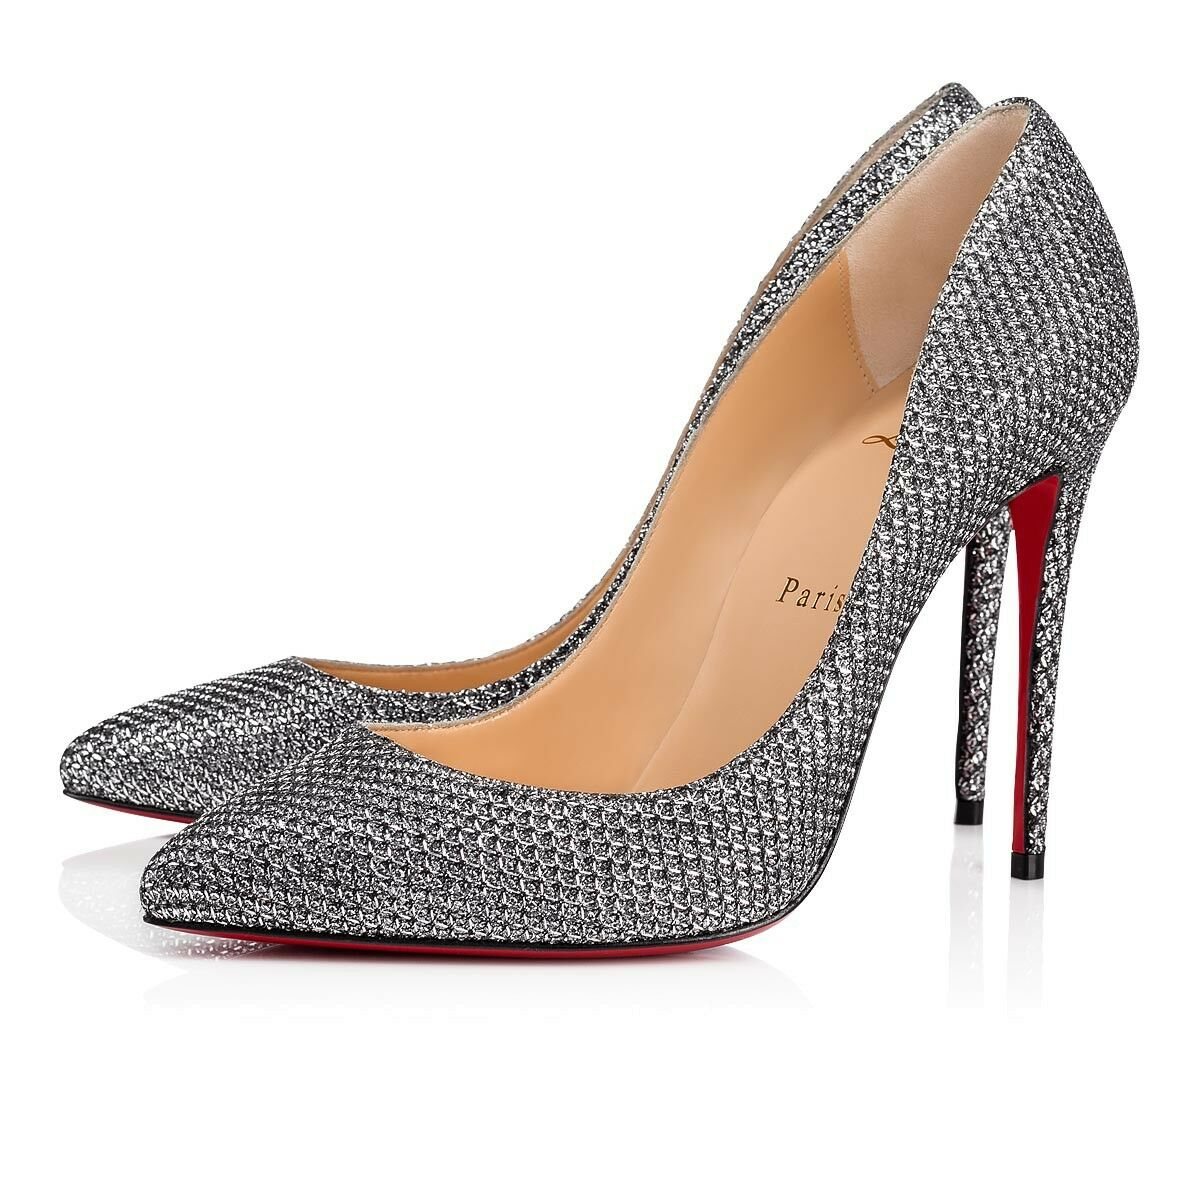 NIB Christian Louboutin Pigalle Follies 100 Antic Silver Glitter Heel Pump 41.5